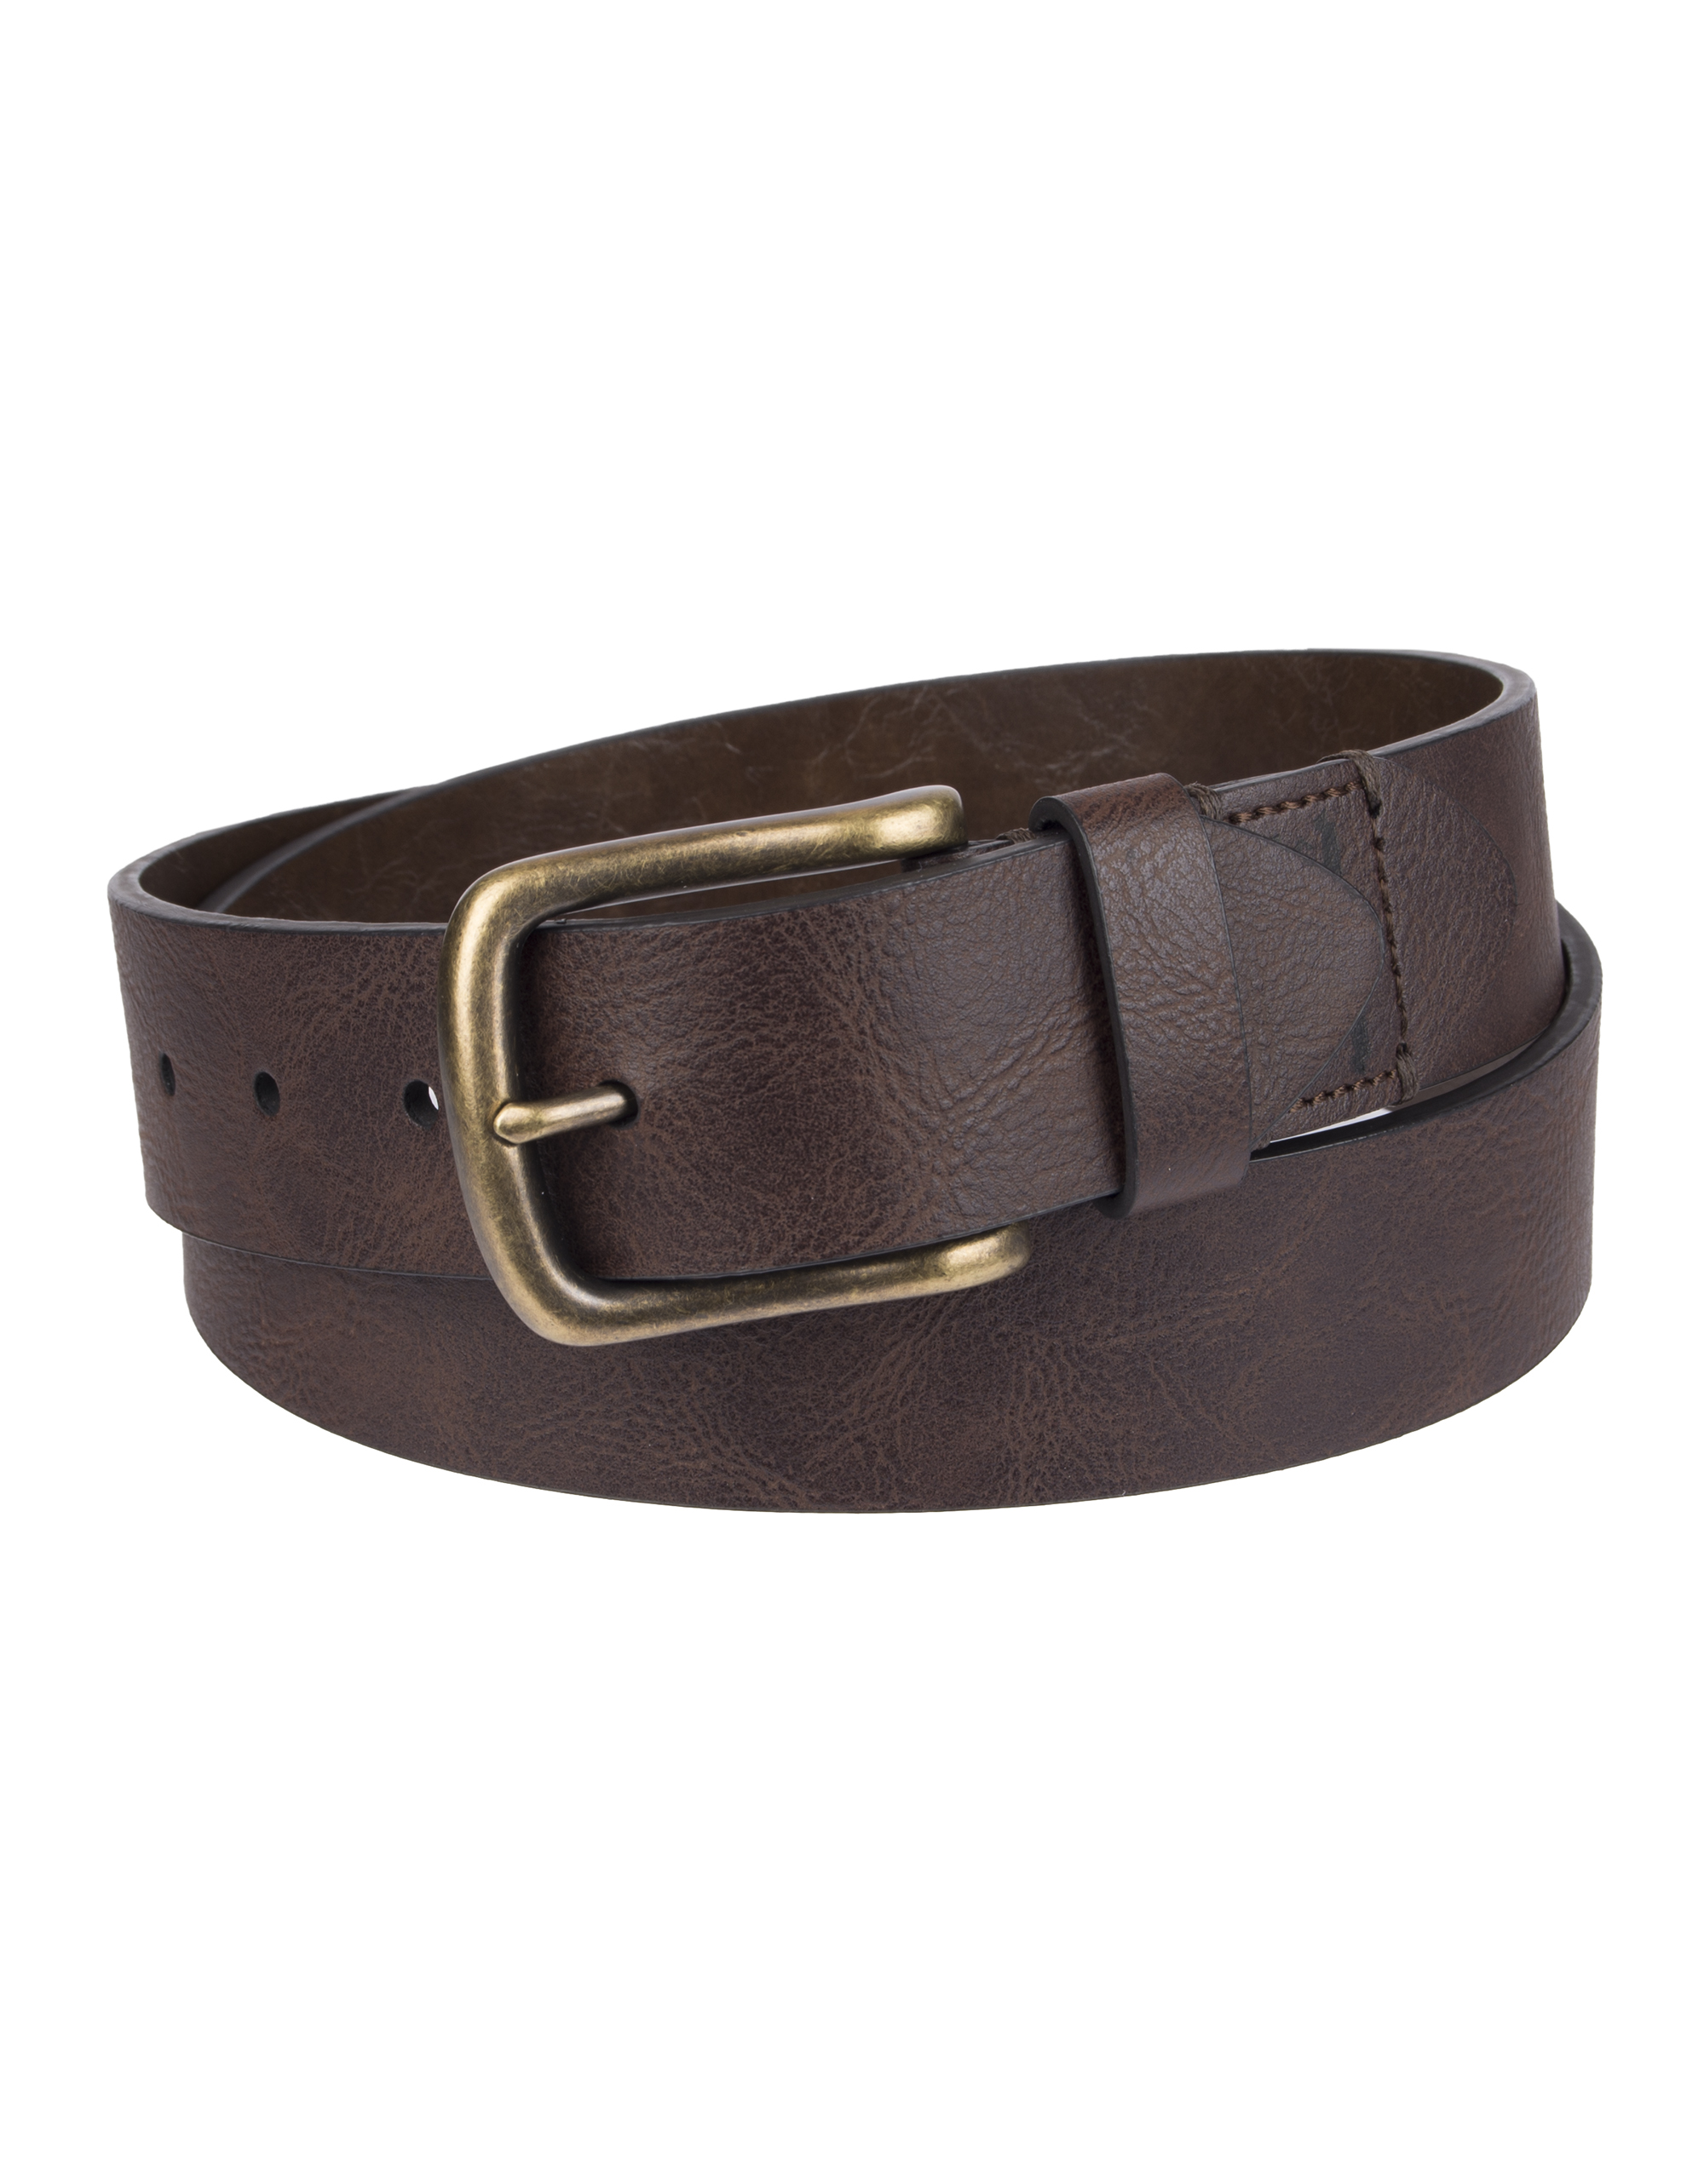 Levi's 38mm Men's Belt Tabbed Cut Edge with 2-Horse Logo